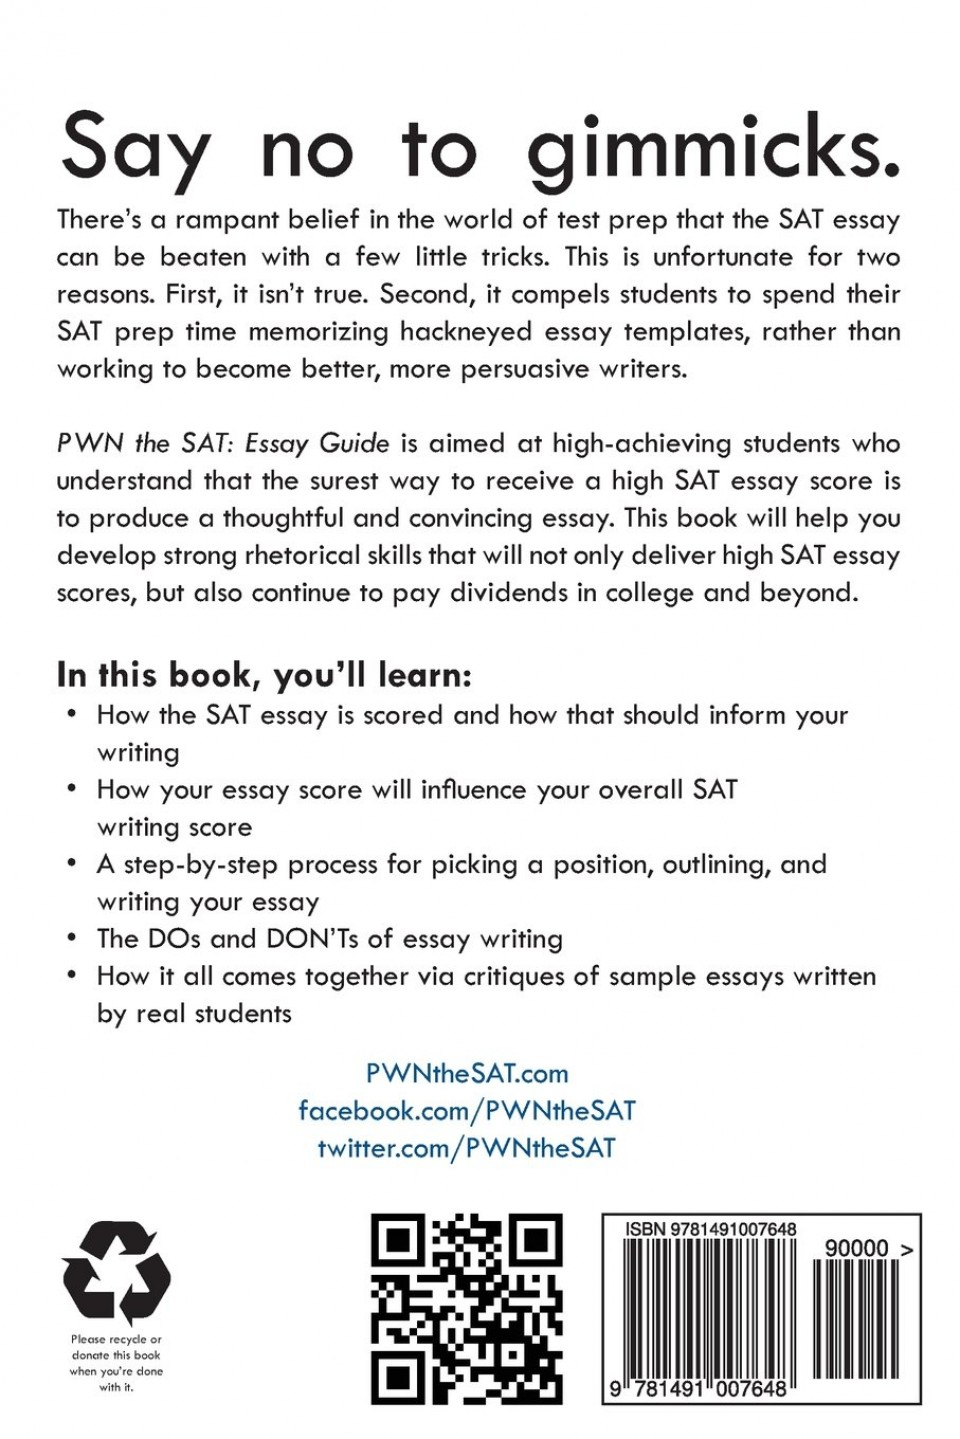 009 Sat Essay 712bcqjf85sl Rare Writing Tips Pdf Topics Average Score For Ivy League 960